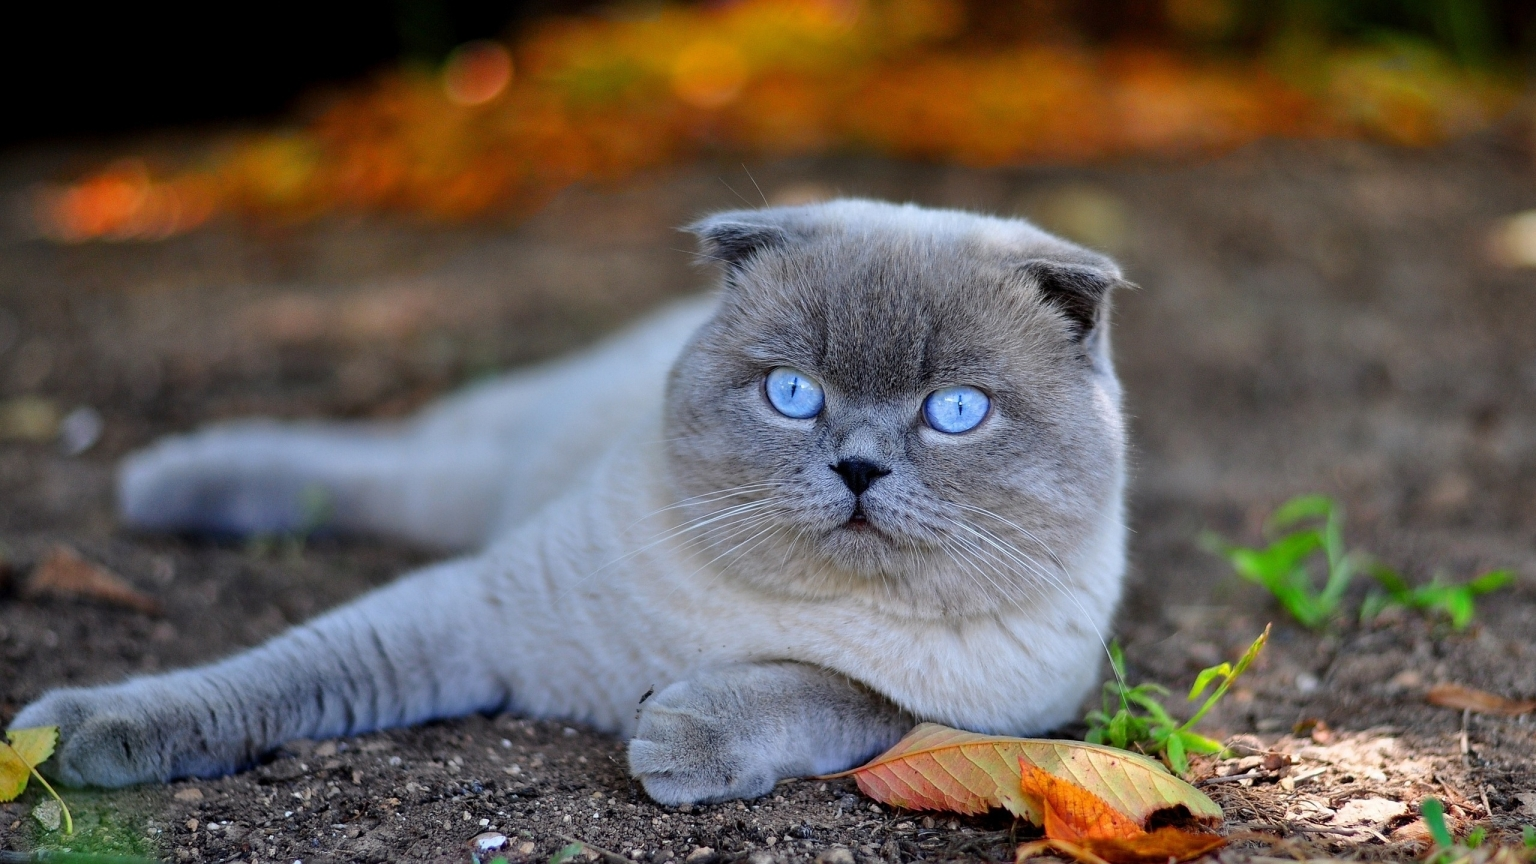 Scottish Fold Cat in Nature for 1536 x 864 HDTV resolution